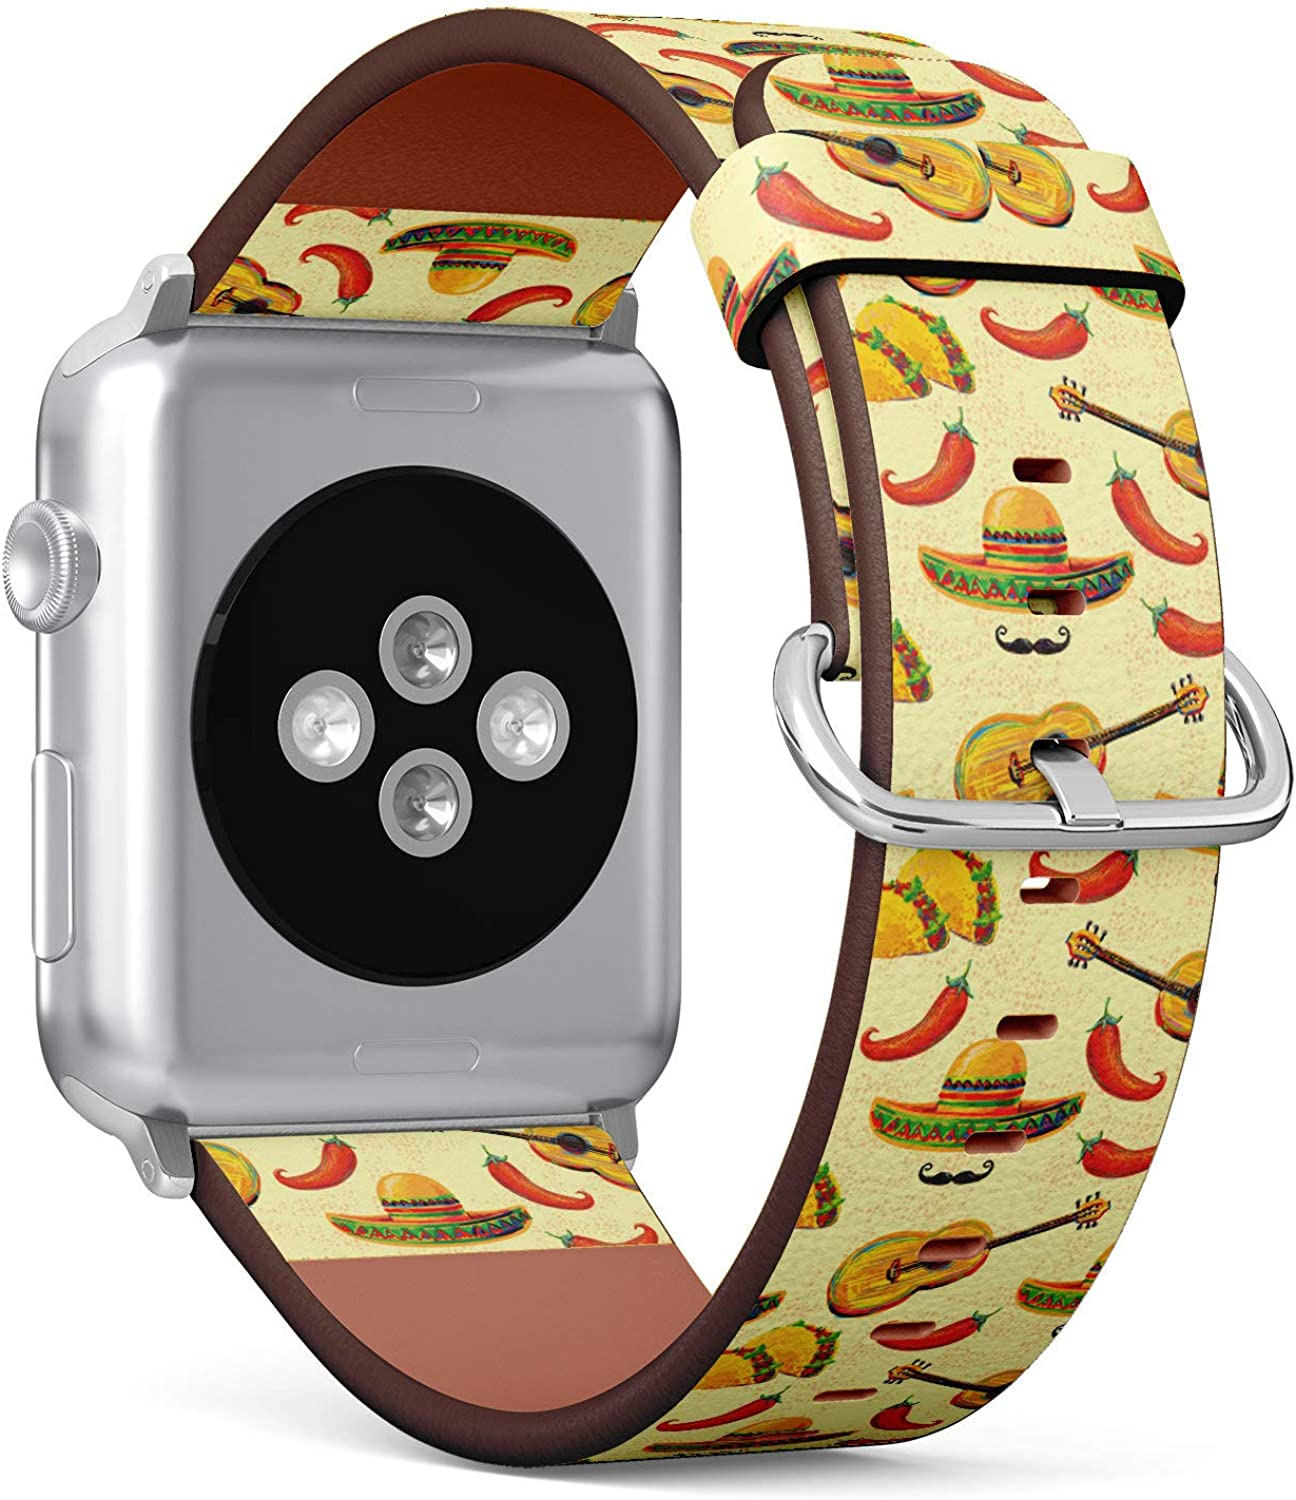 (Mexican Music Pattern with Sombrero hat, Mustache, Guitar, Taco and chill) Patterned Leather Wristband Strap Compatible with Apple Watch Series 4/3/2/1 gen,Replacement of iWatch 42mm / 44mm Bands